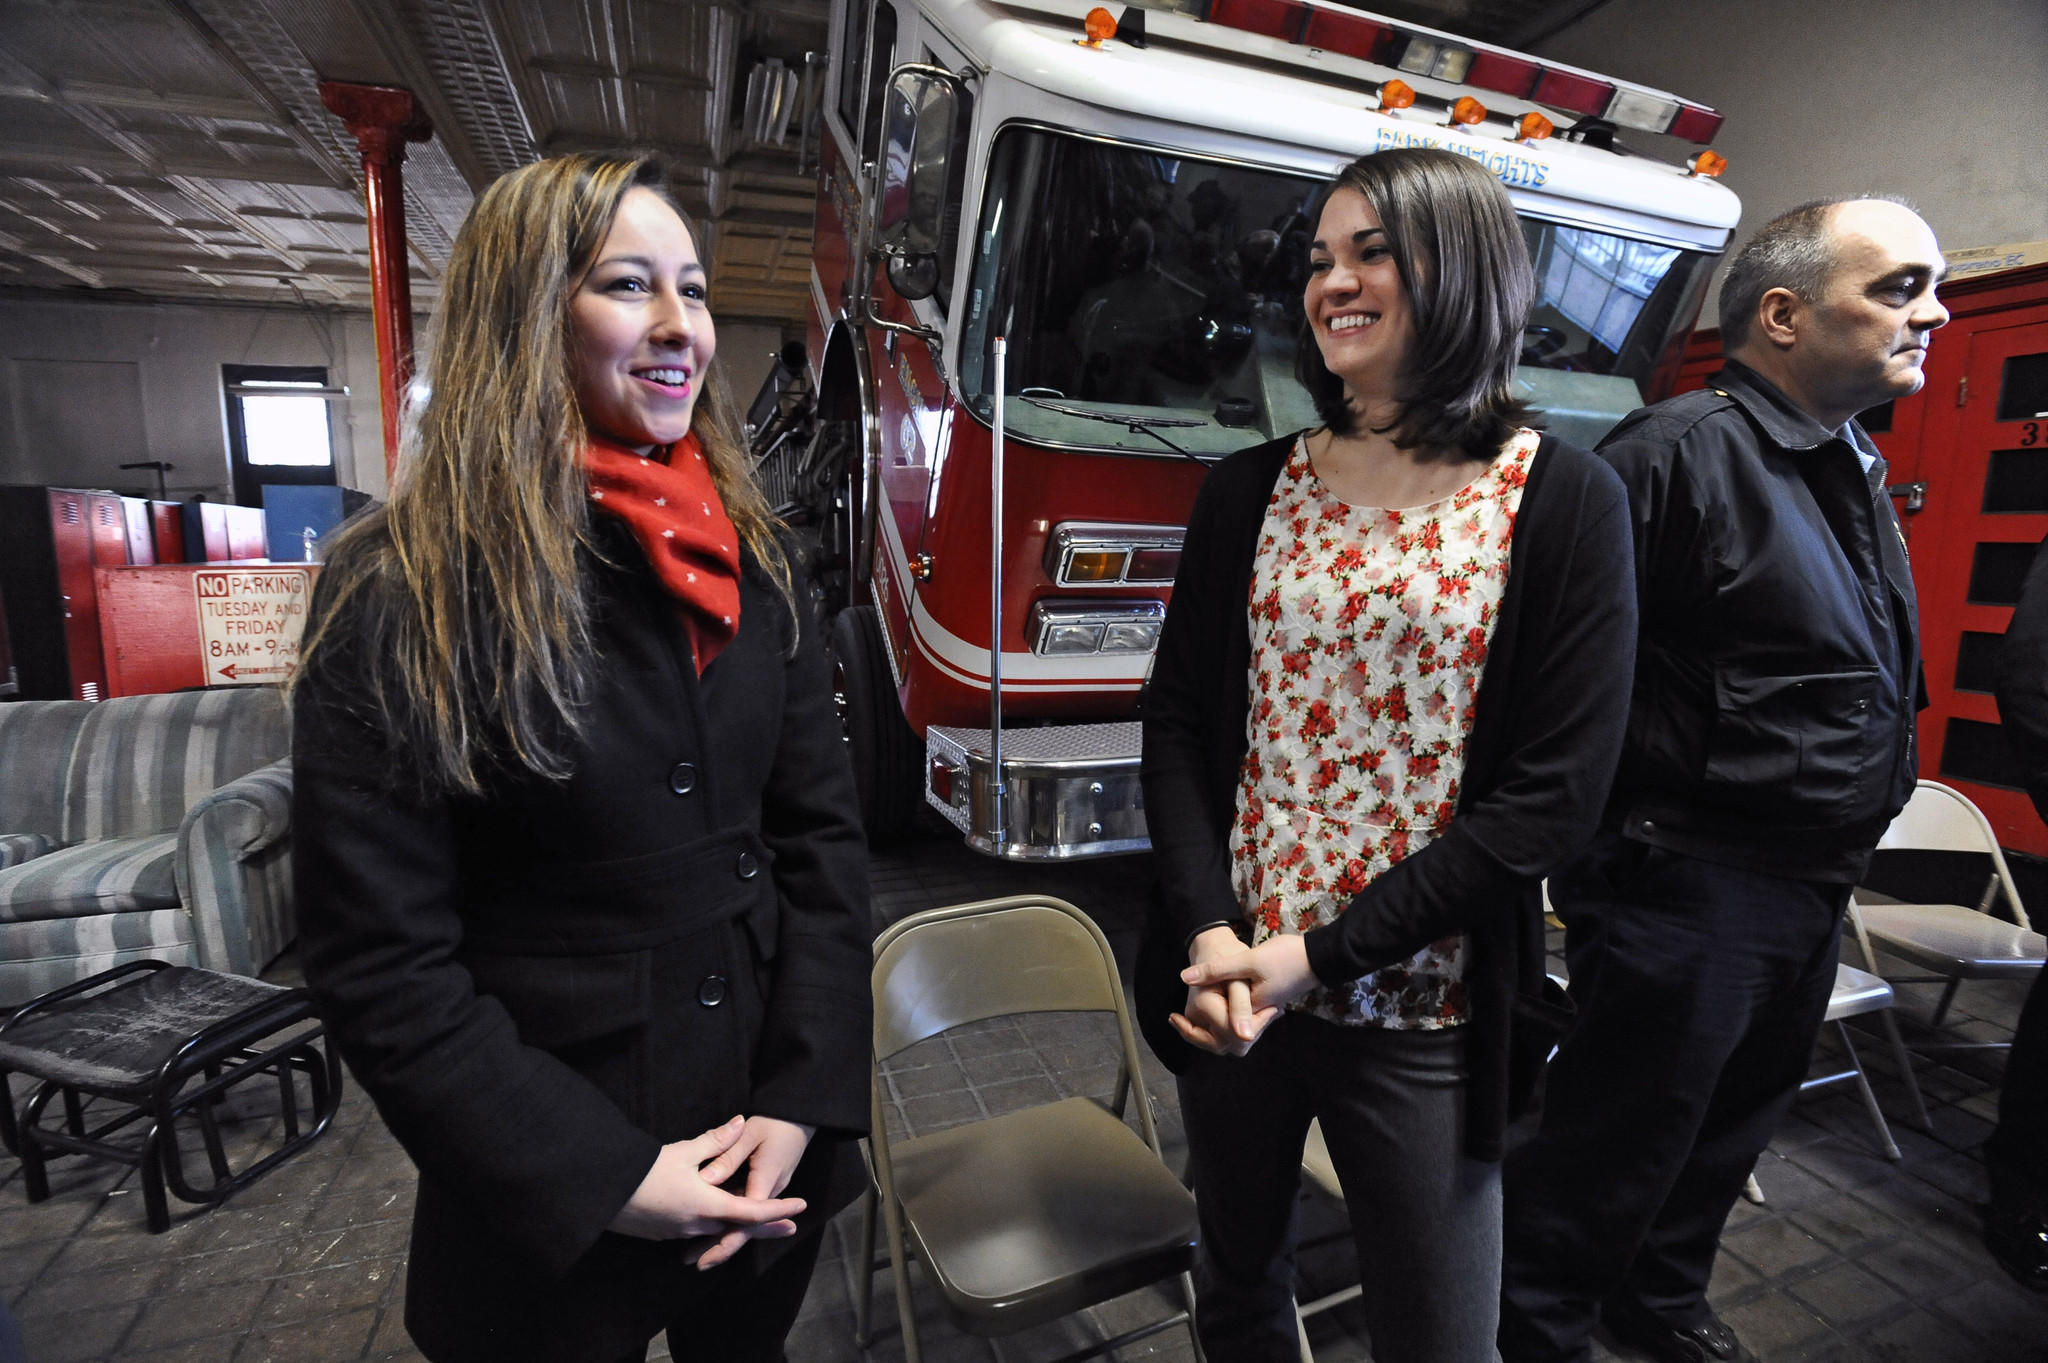 Summer Britcher, 19, center, meets Former Olympics skater Kimmie Meissner, left, for the first time. Britcher, a member of the US Olympic luge team who will compete in singles luge at the Winter Olympics in Sochi, Russia, gets well wishes and a send off from the Baltimore Fire Department at Engine Company #29 on Park Heights Avenue. Her father William Britcher, right, is a captain at the station. Kimmie Meissner and her parents also attended the media event.